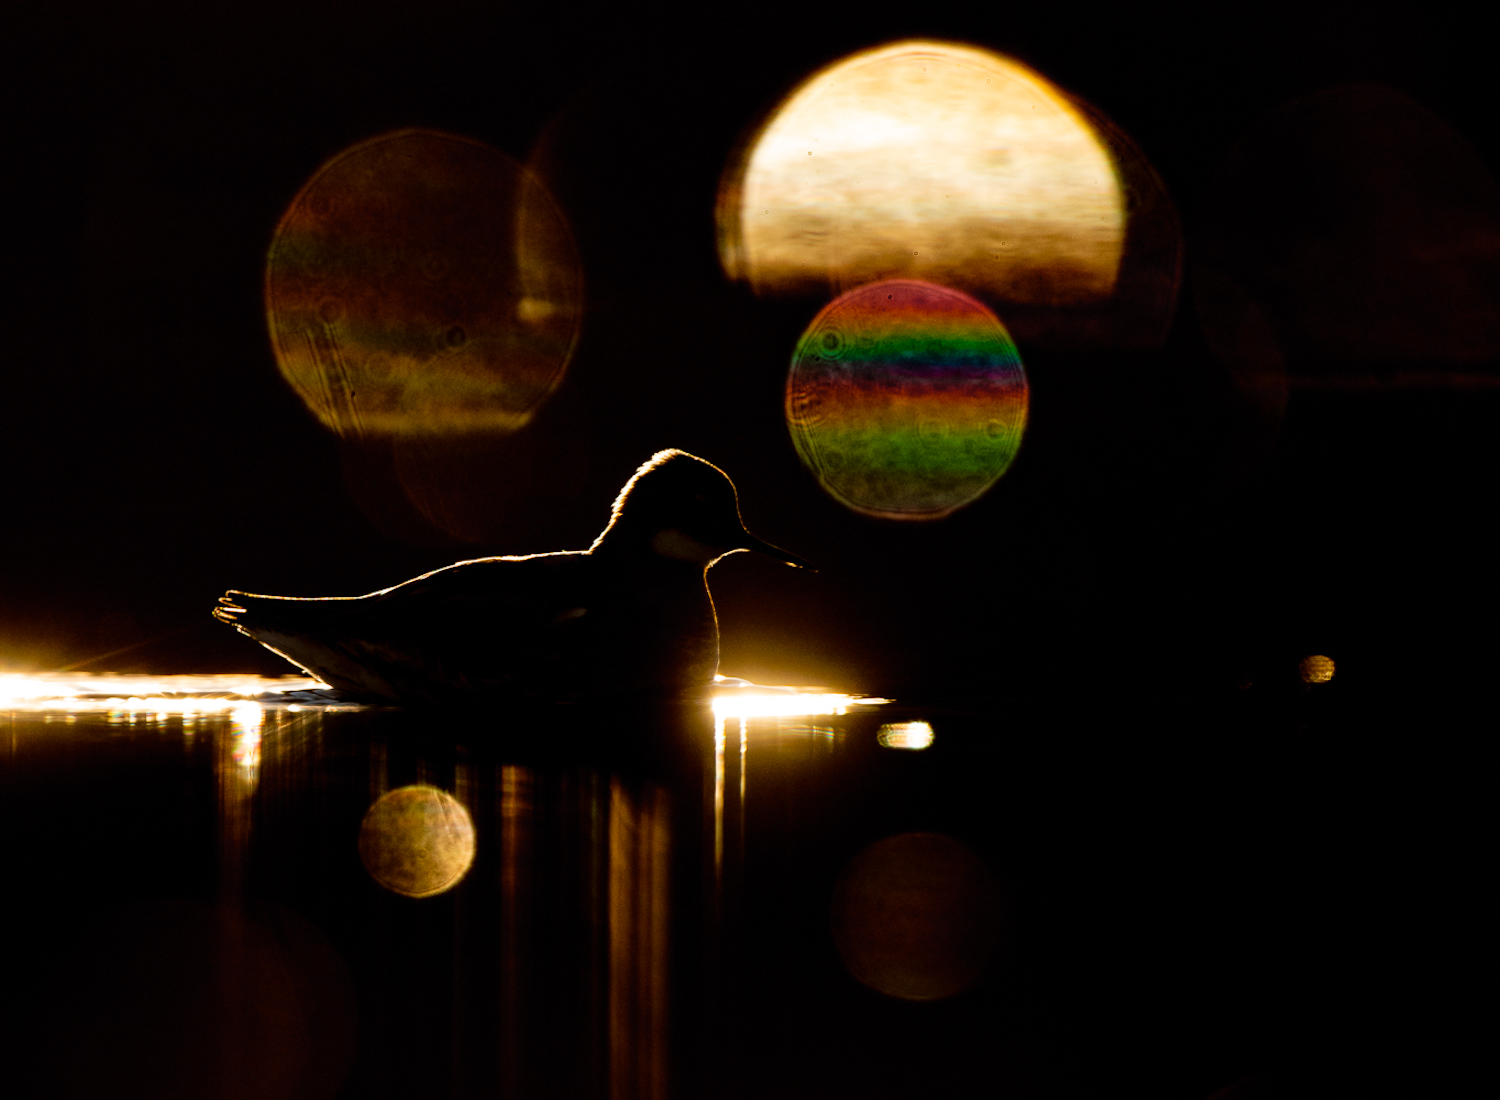 A Red-Necked Phalarope illuminated on its edges on dark water, with rainbow reflections from the camera lens.